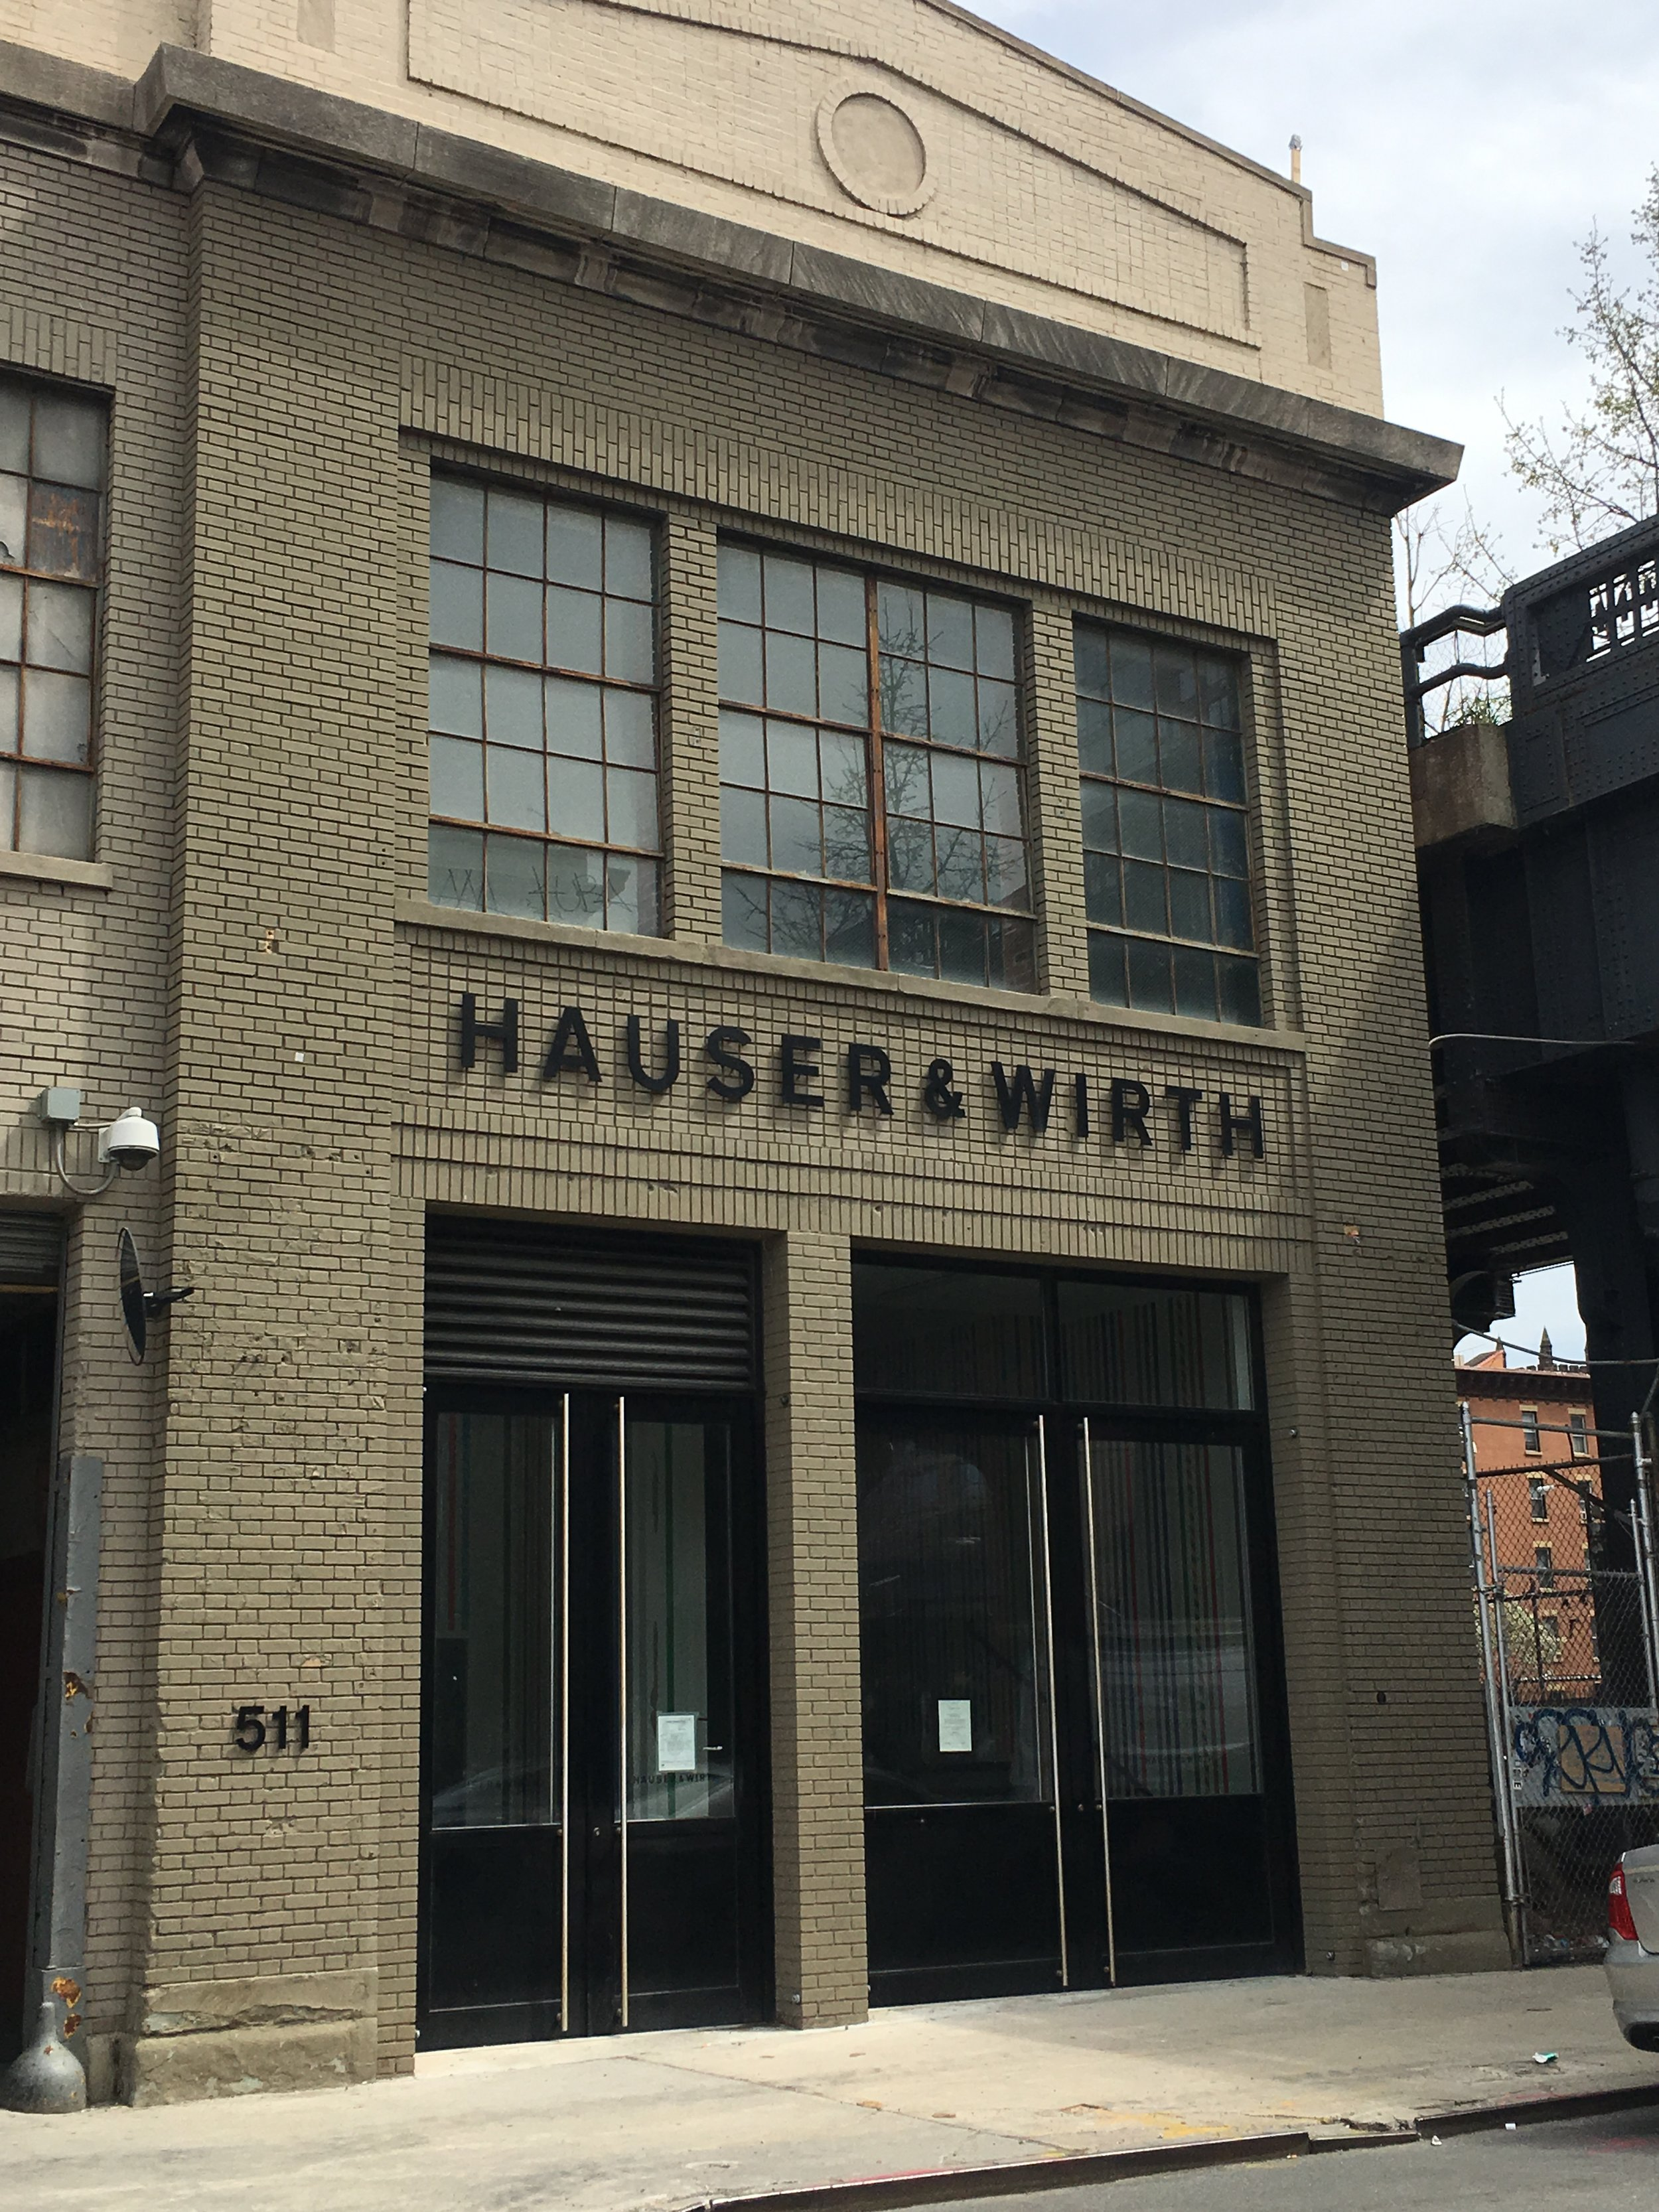 Hauser & Wirth - 511 West 18th Street Selldorf Architects